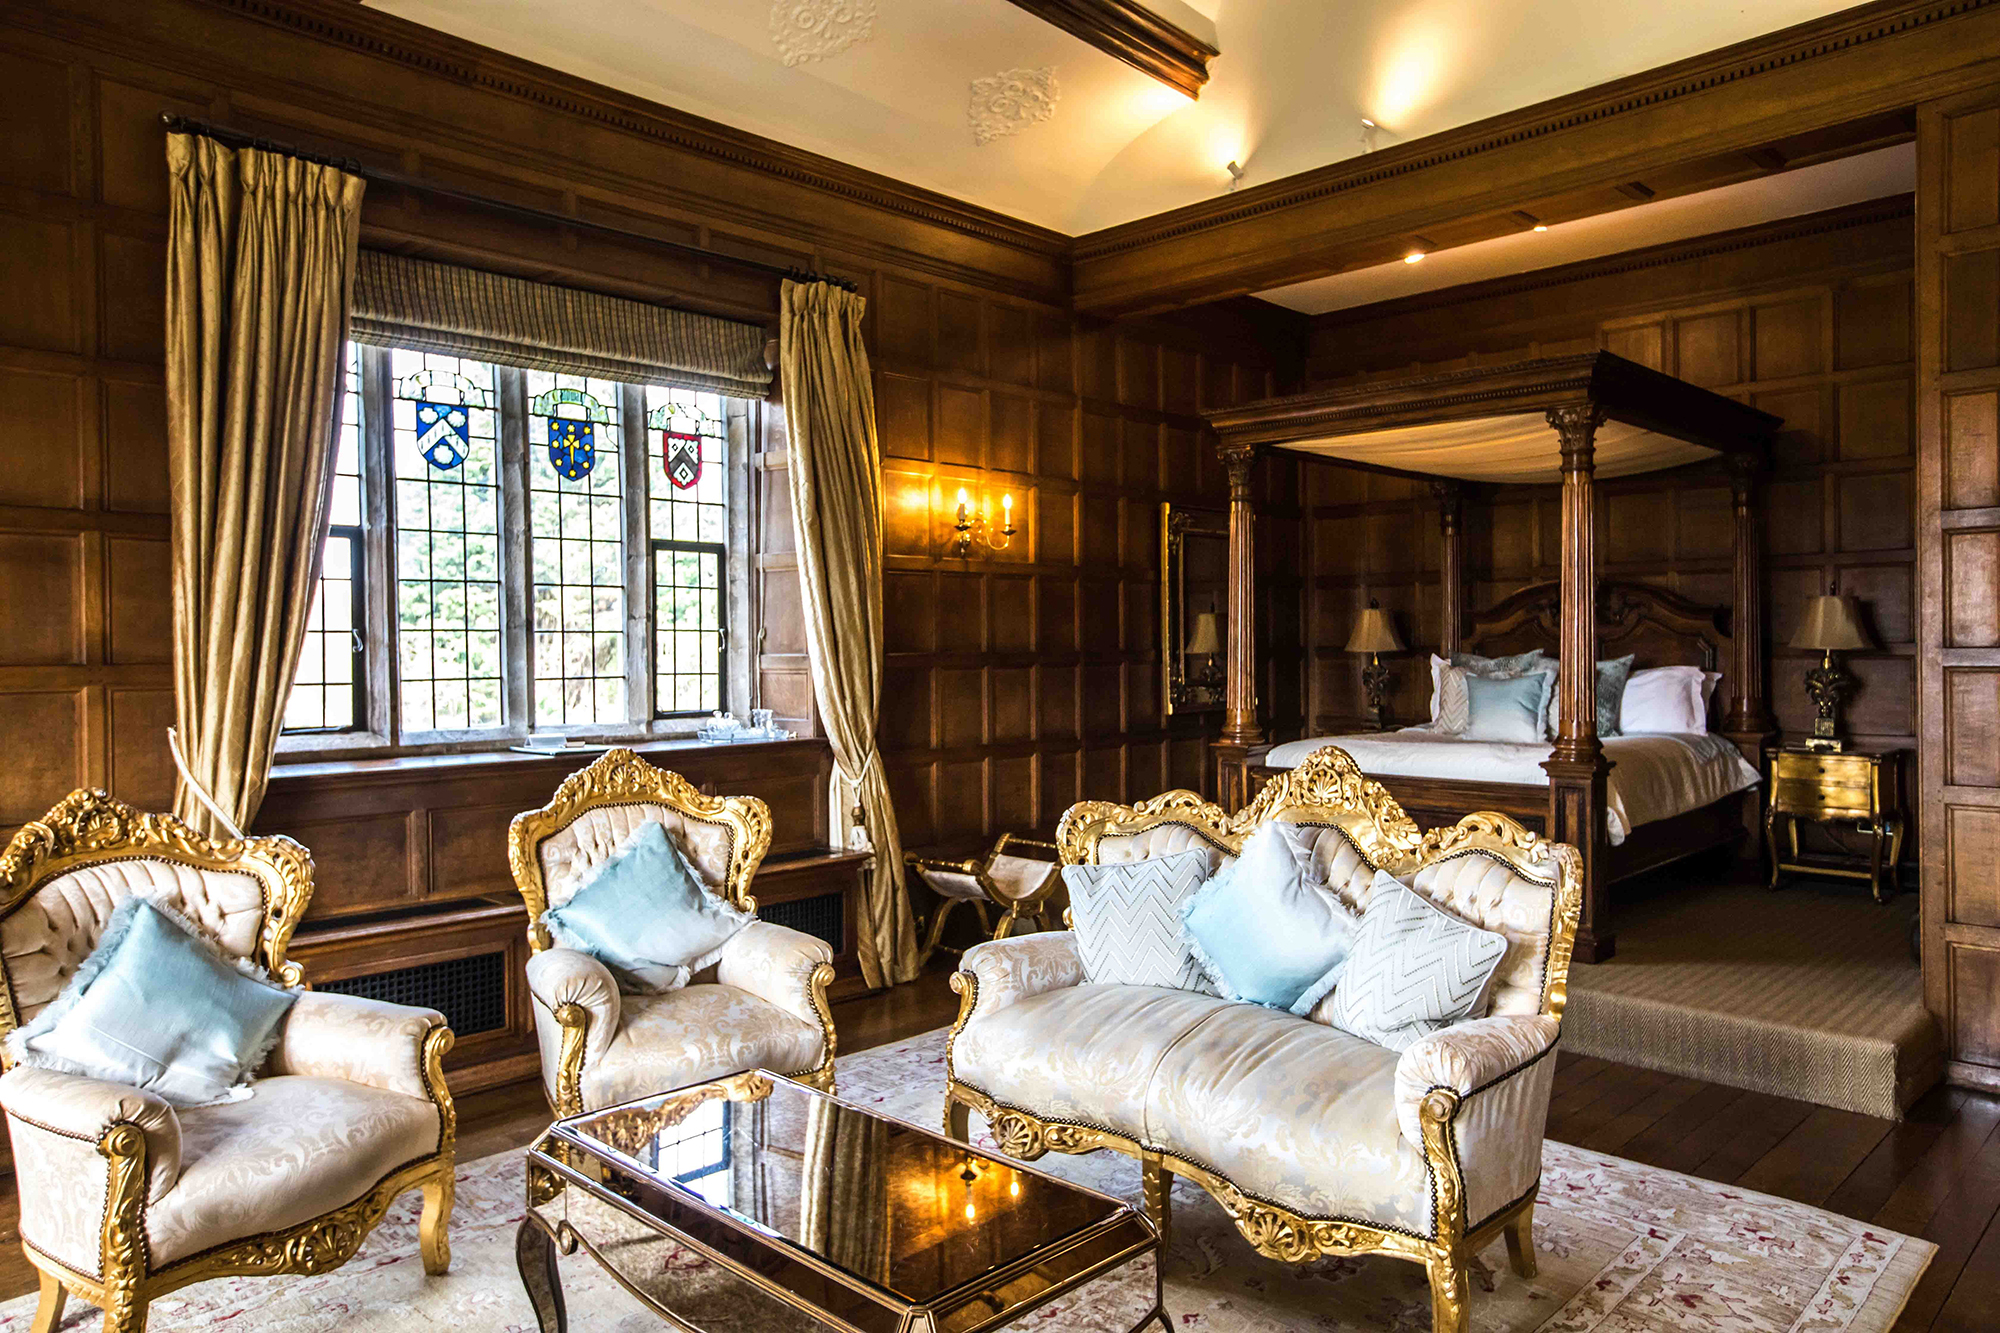 Immaculate Tudor bedroom, with four-poster bed, ready for the married couple at Hengrave Hall